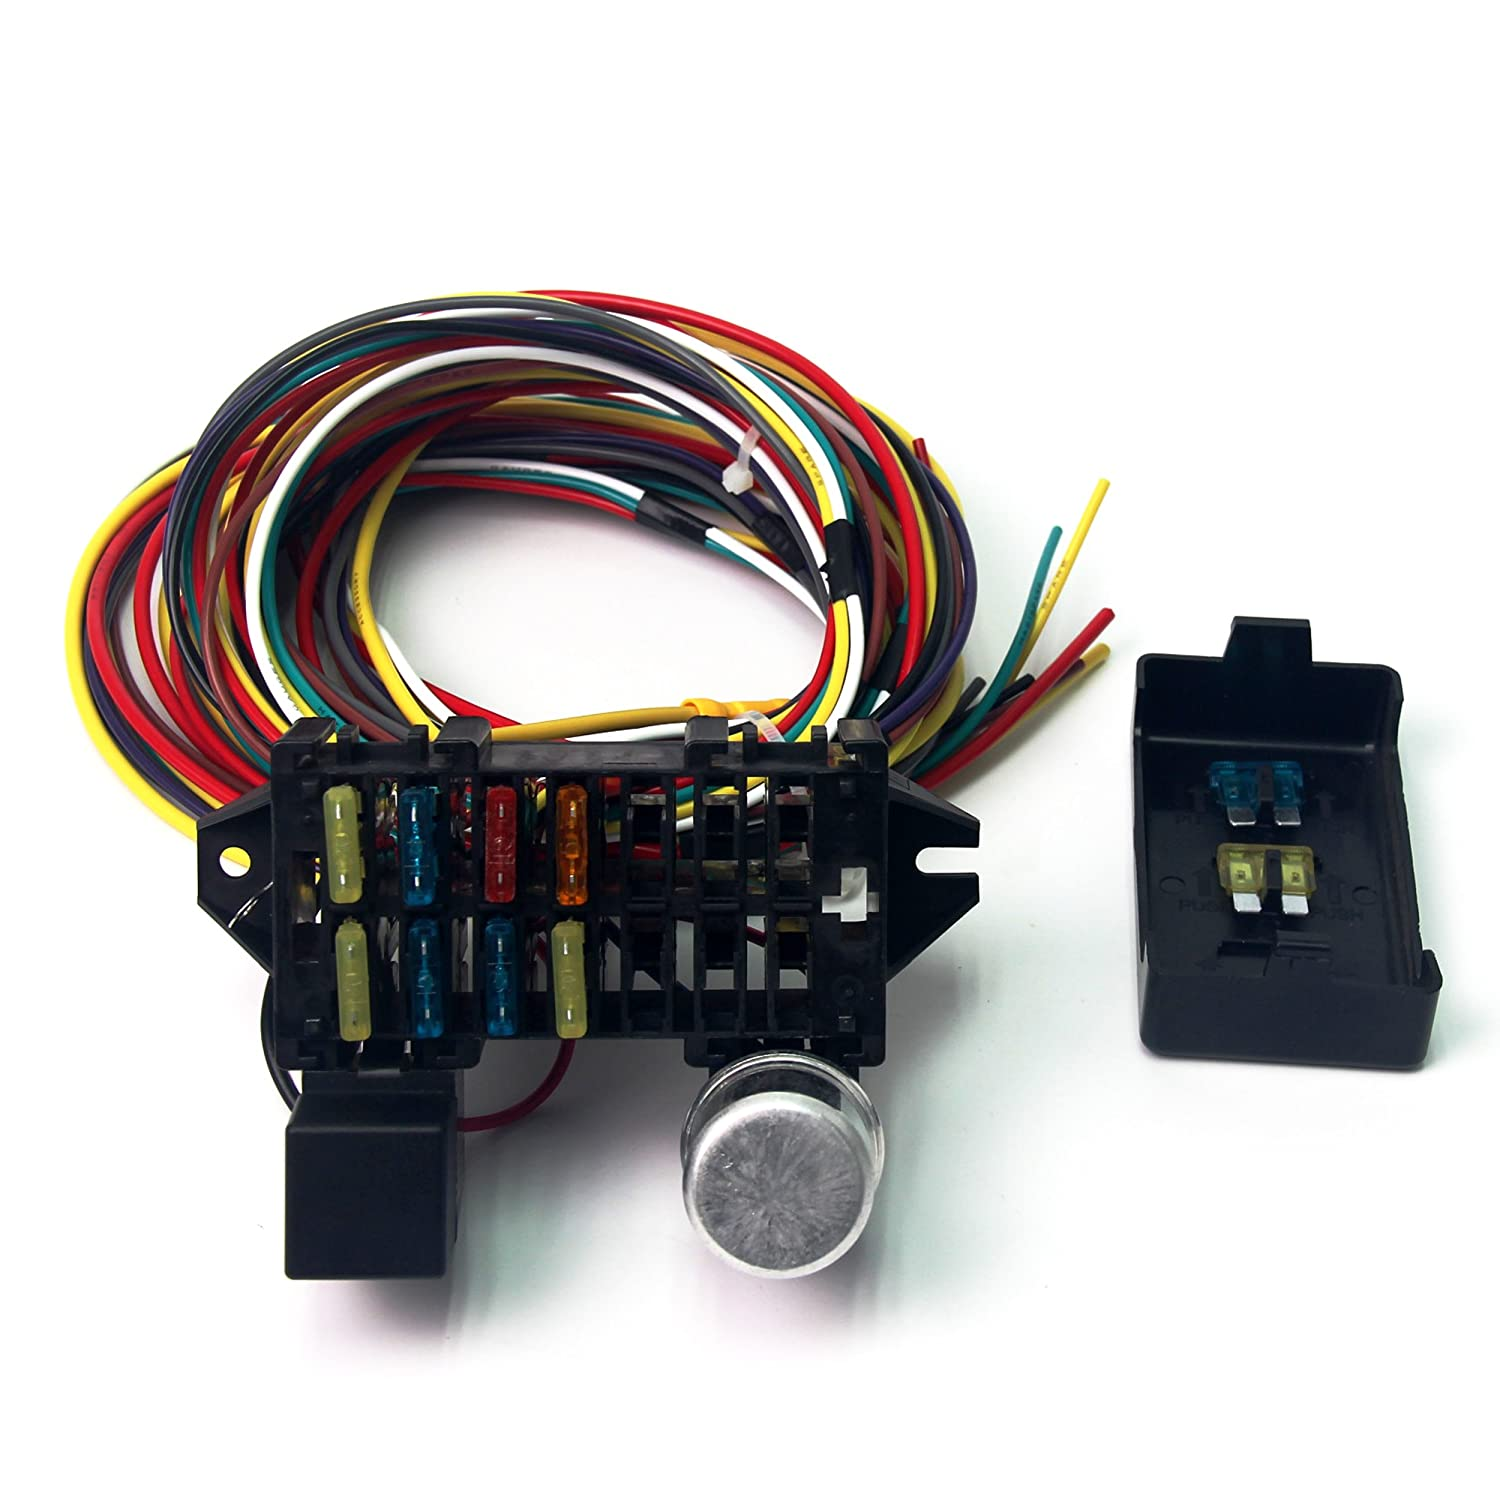 818OhNpuI4L._SL1500_ amazon com wisamic 10 circuit basic wiring harness fuse box universal hot rod wiring harness at mifinder.co